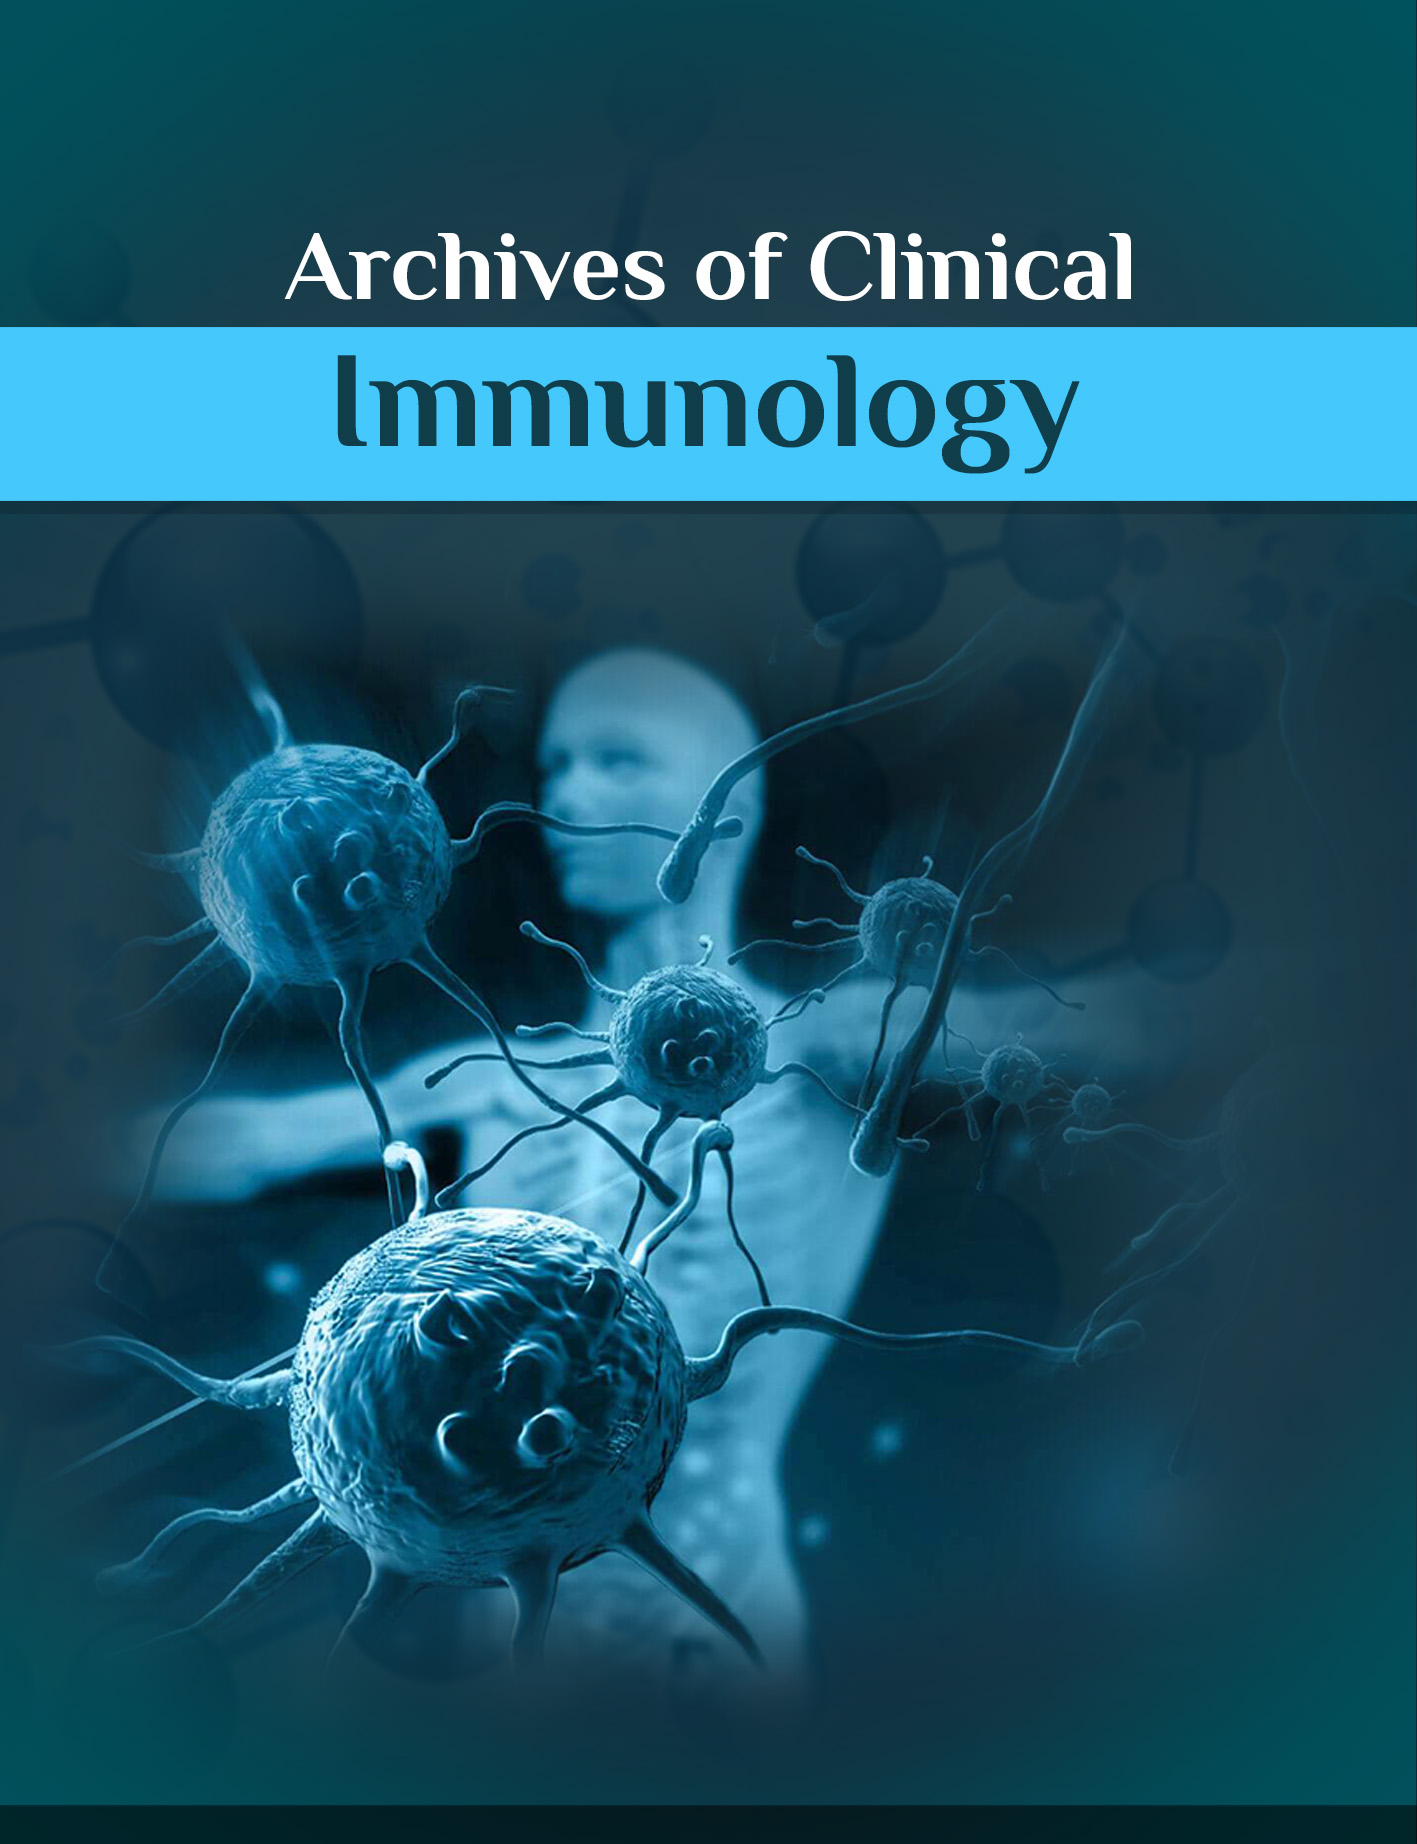 Archives of Clinical Immunology | Somato Publications